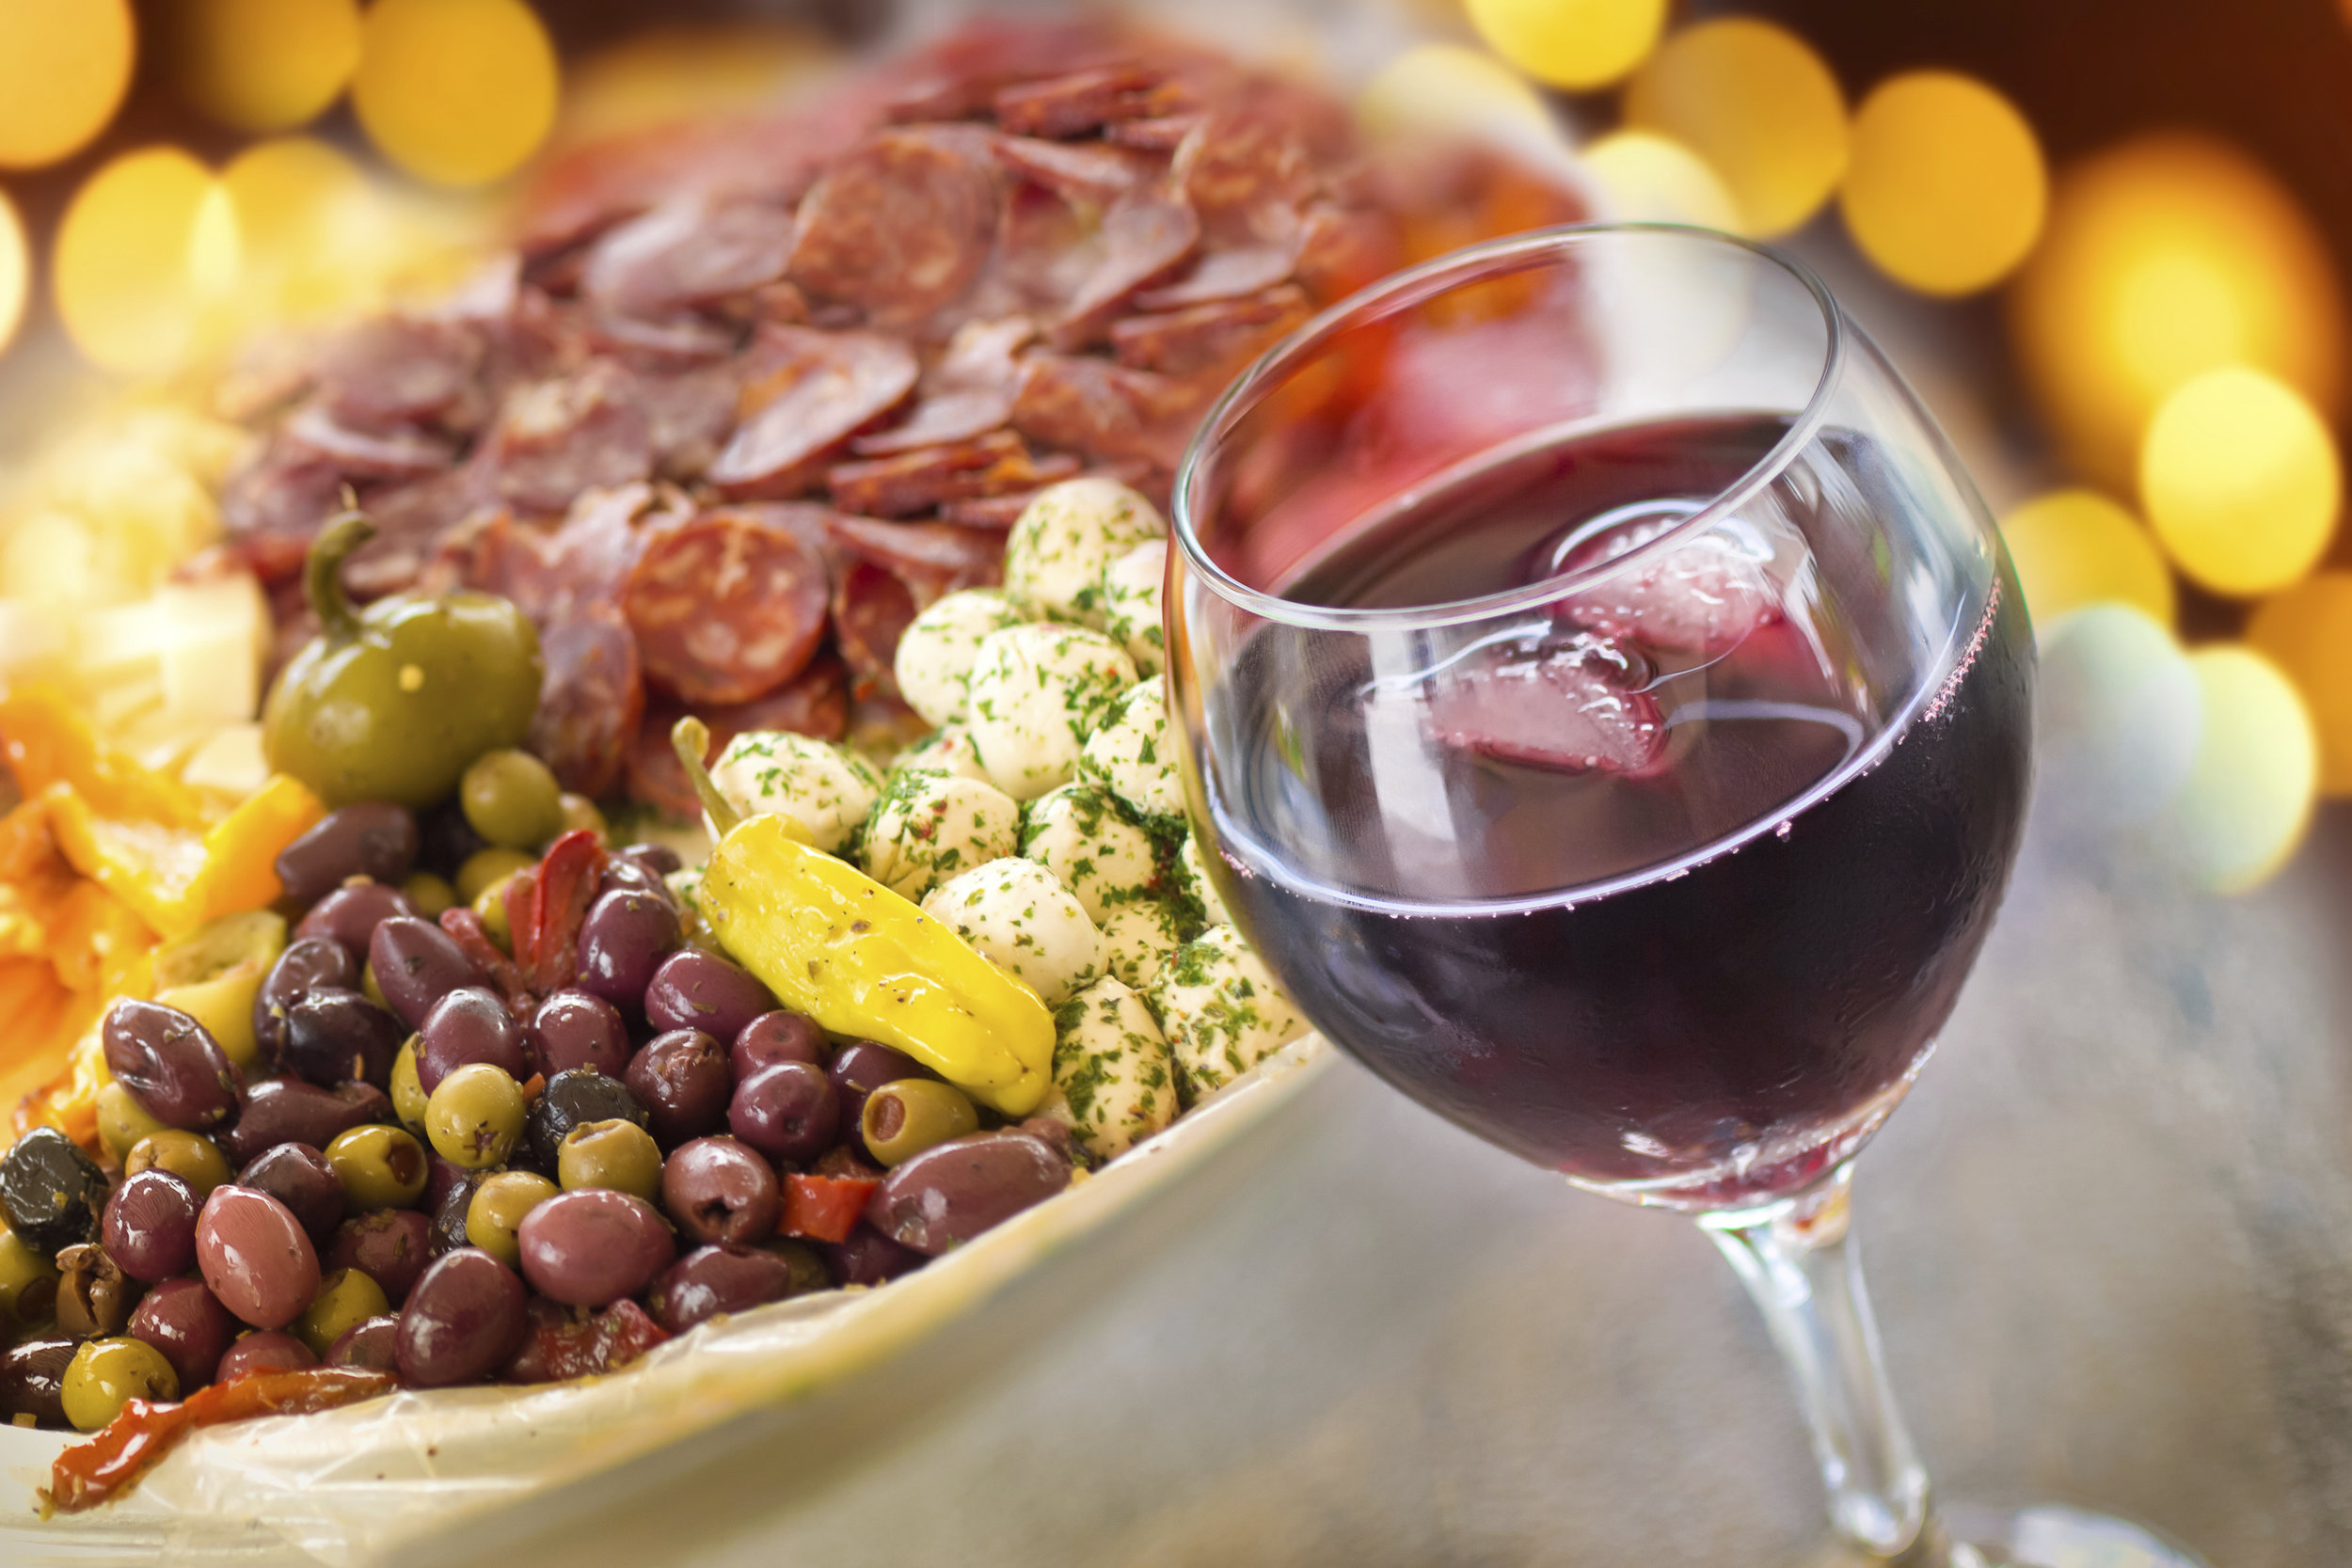 Wine, Cheese, Olives, Salami & Bread - that's the good life!